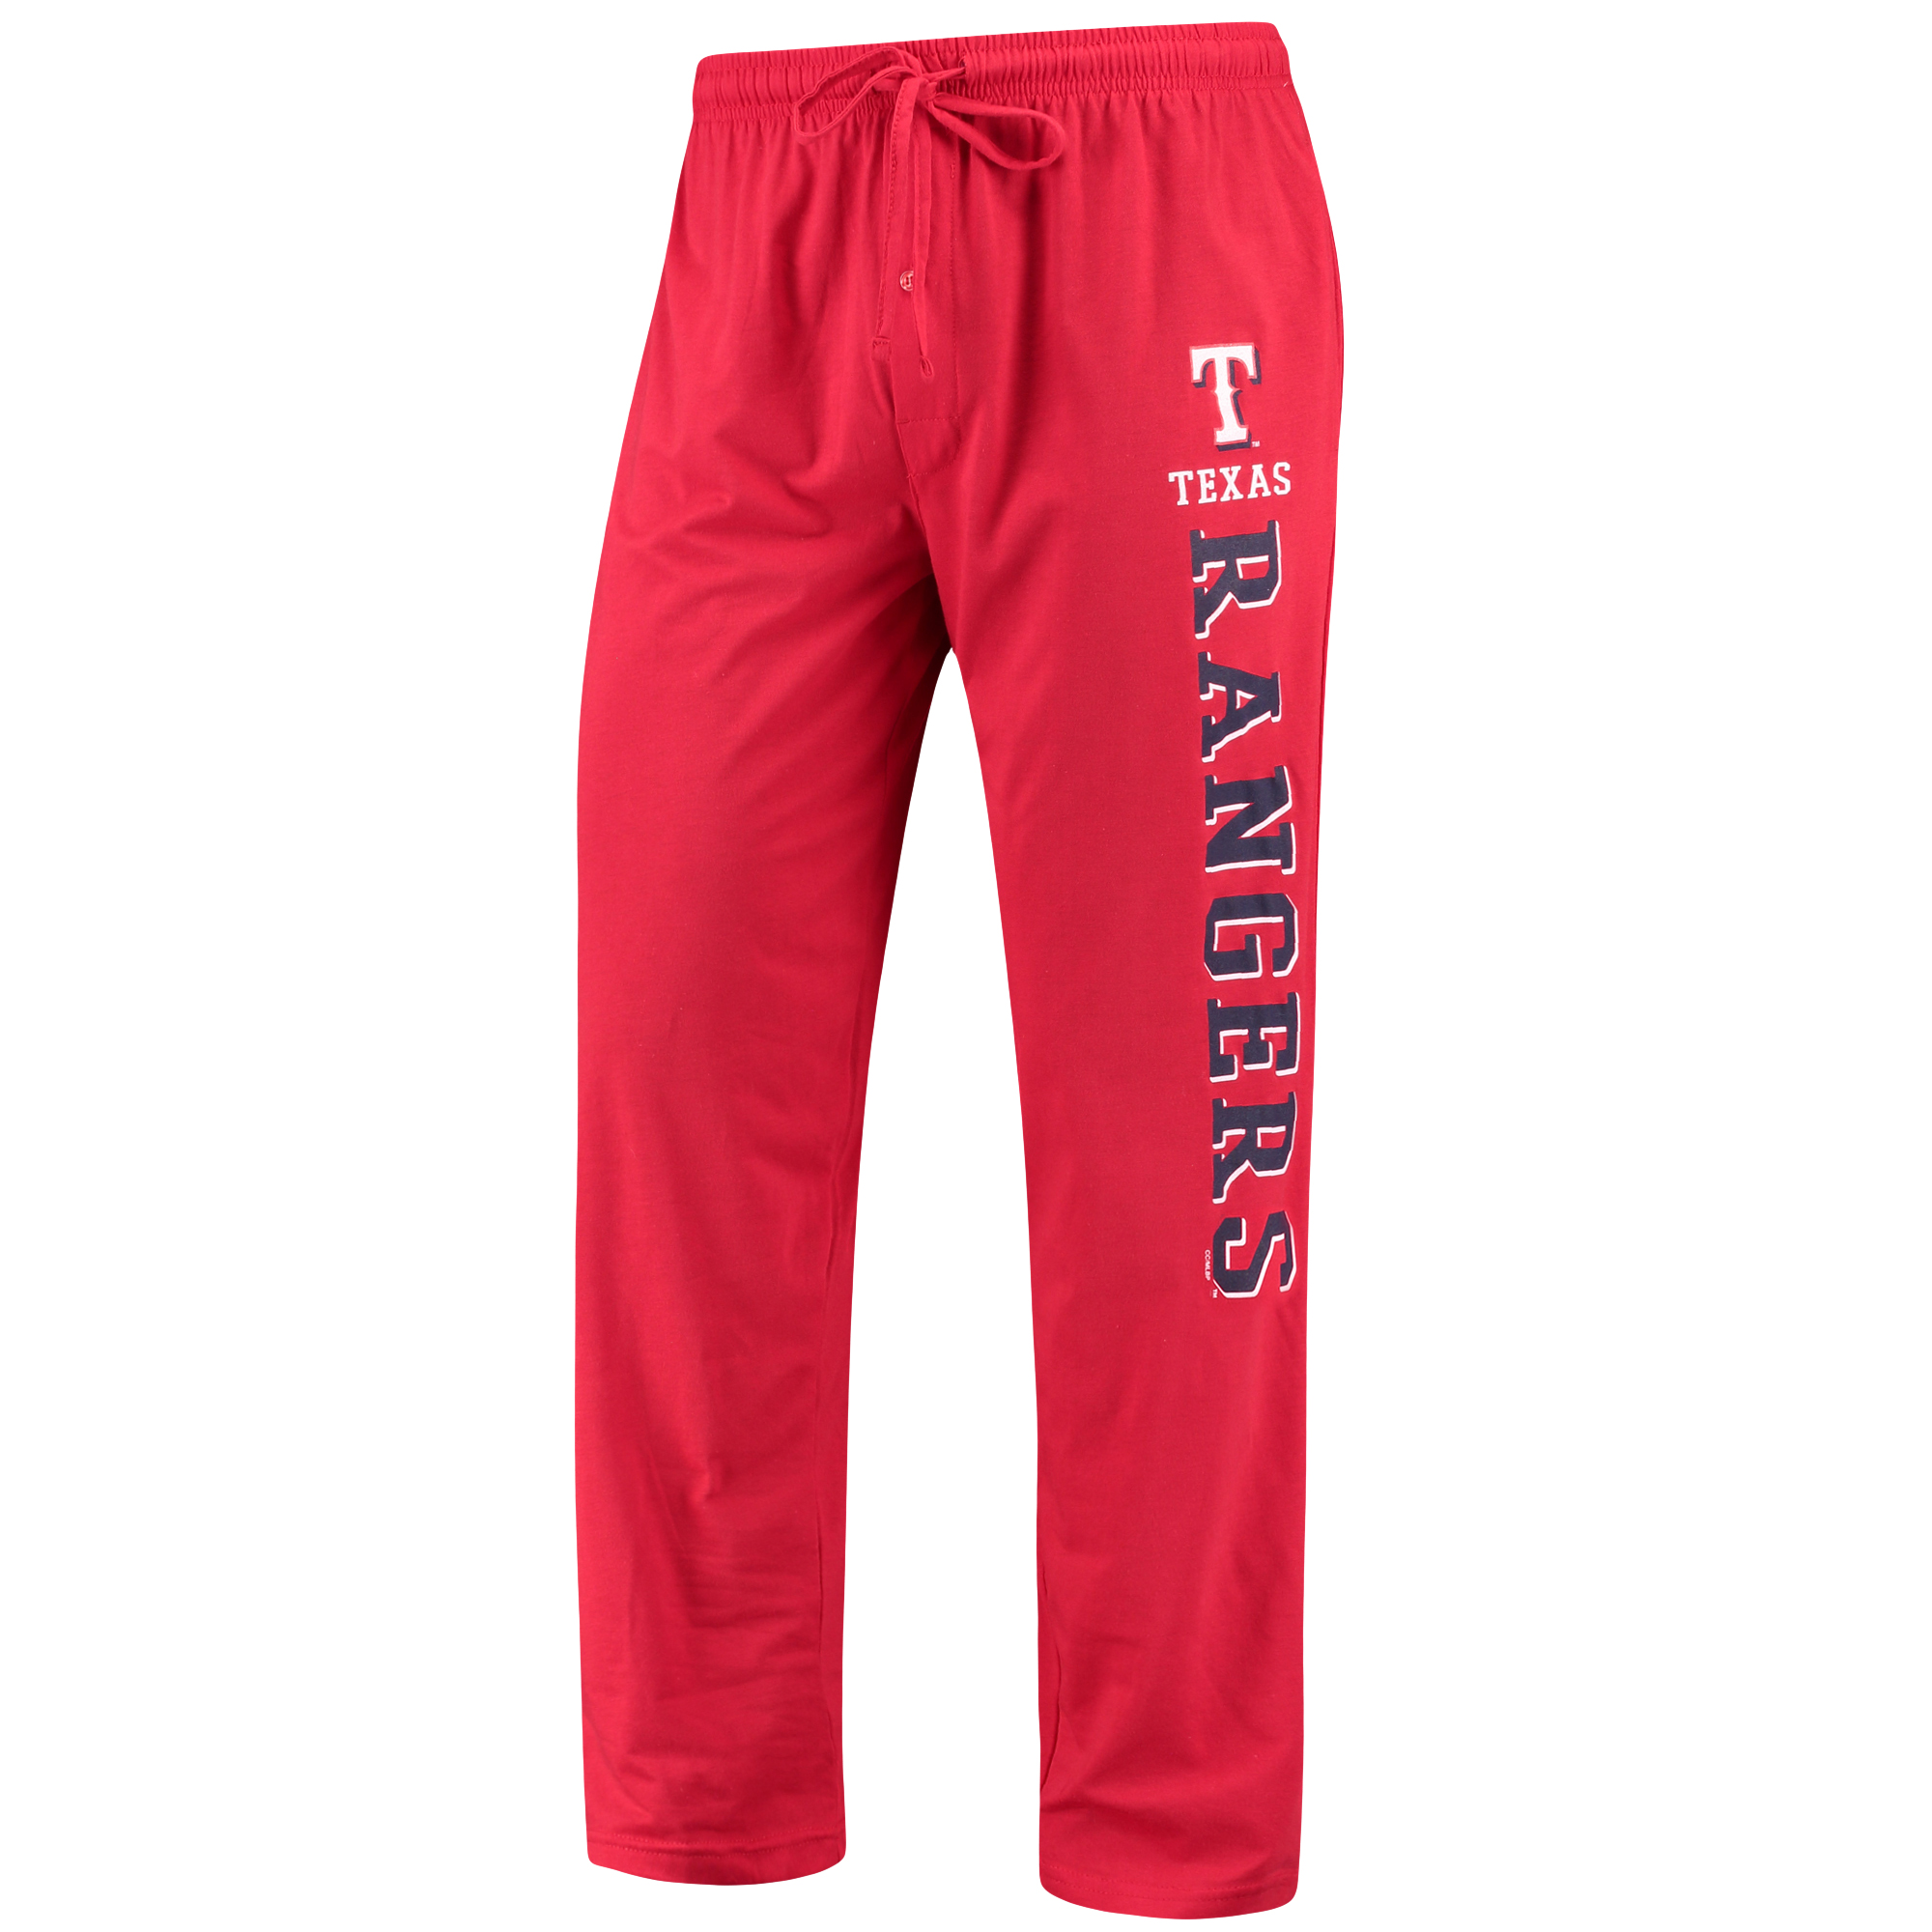 Texas Rangers Concepts Sport Knit Pants - Red